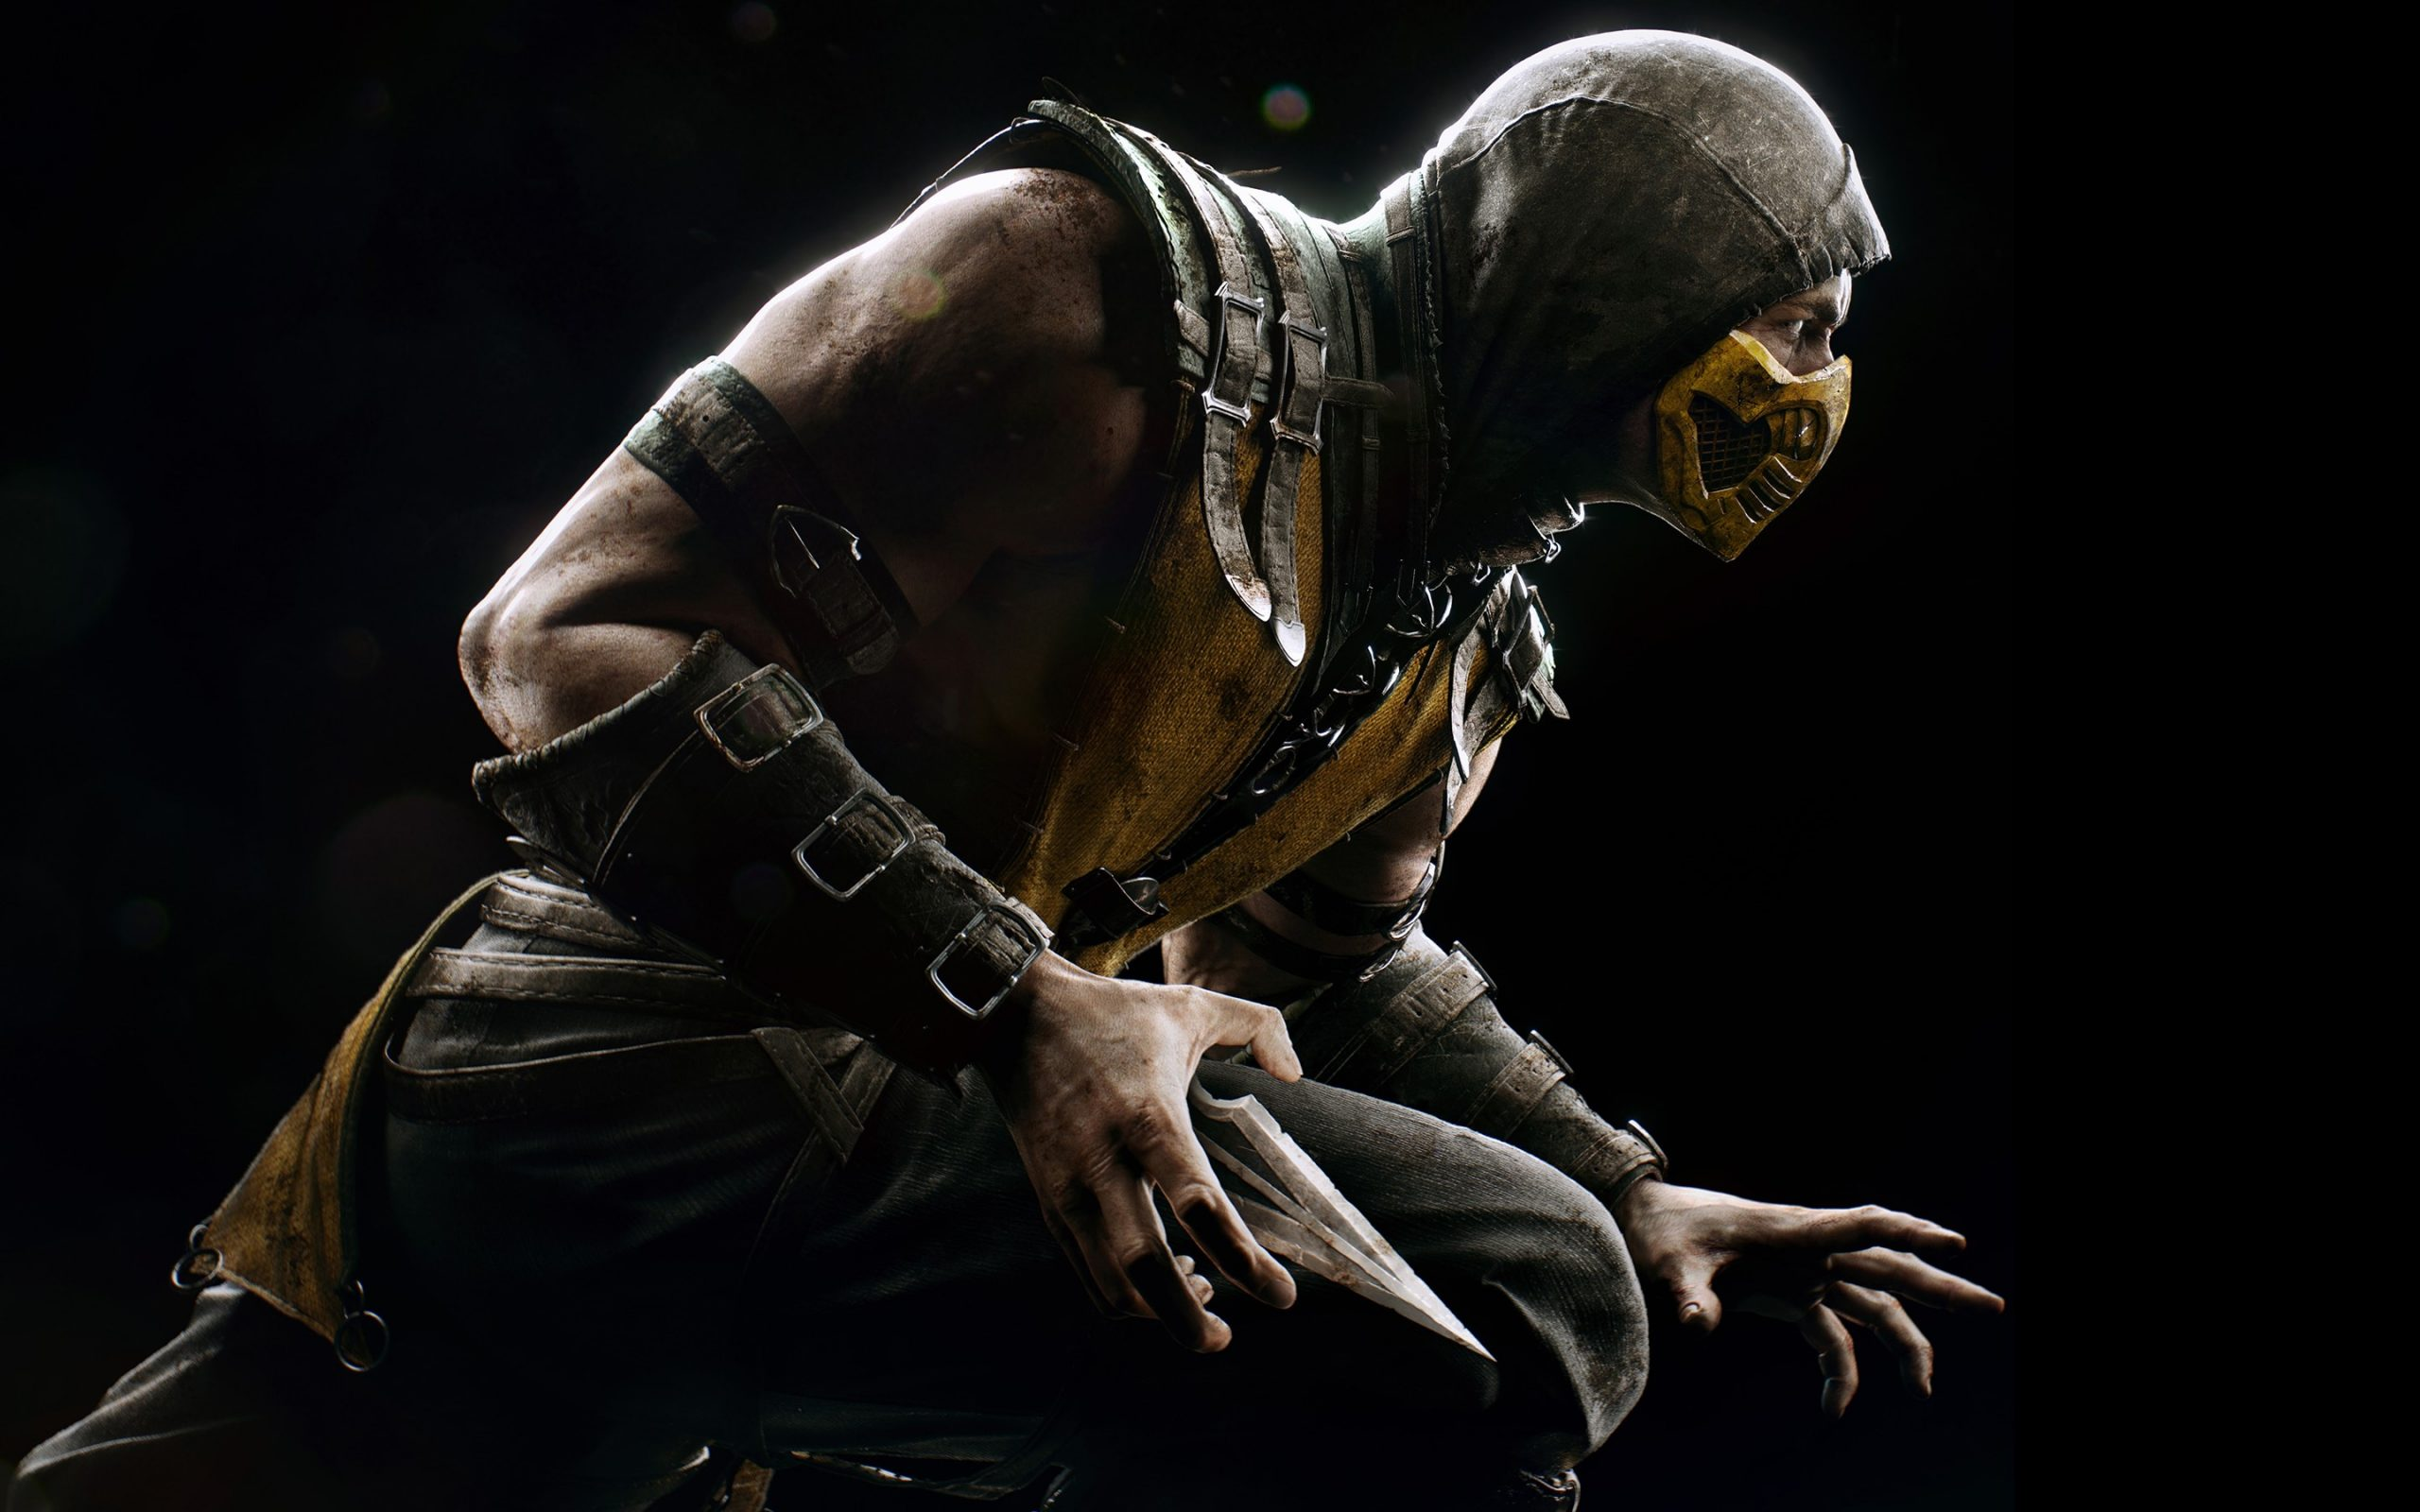 Mortal Kombat Wallpapers 2